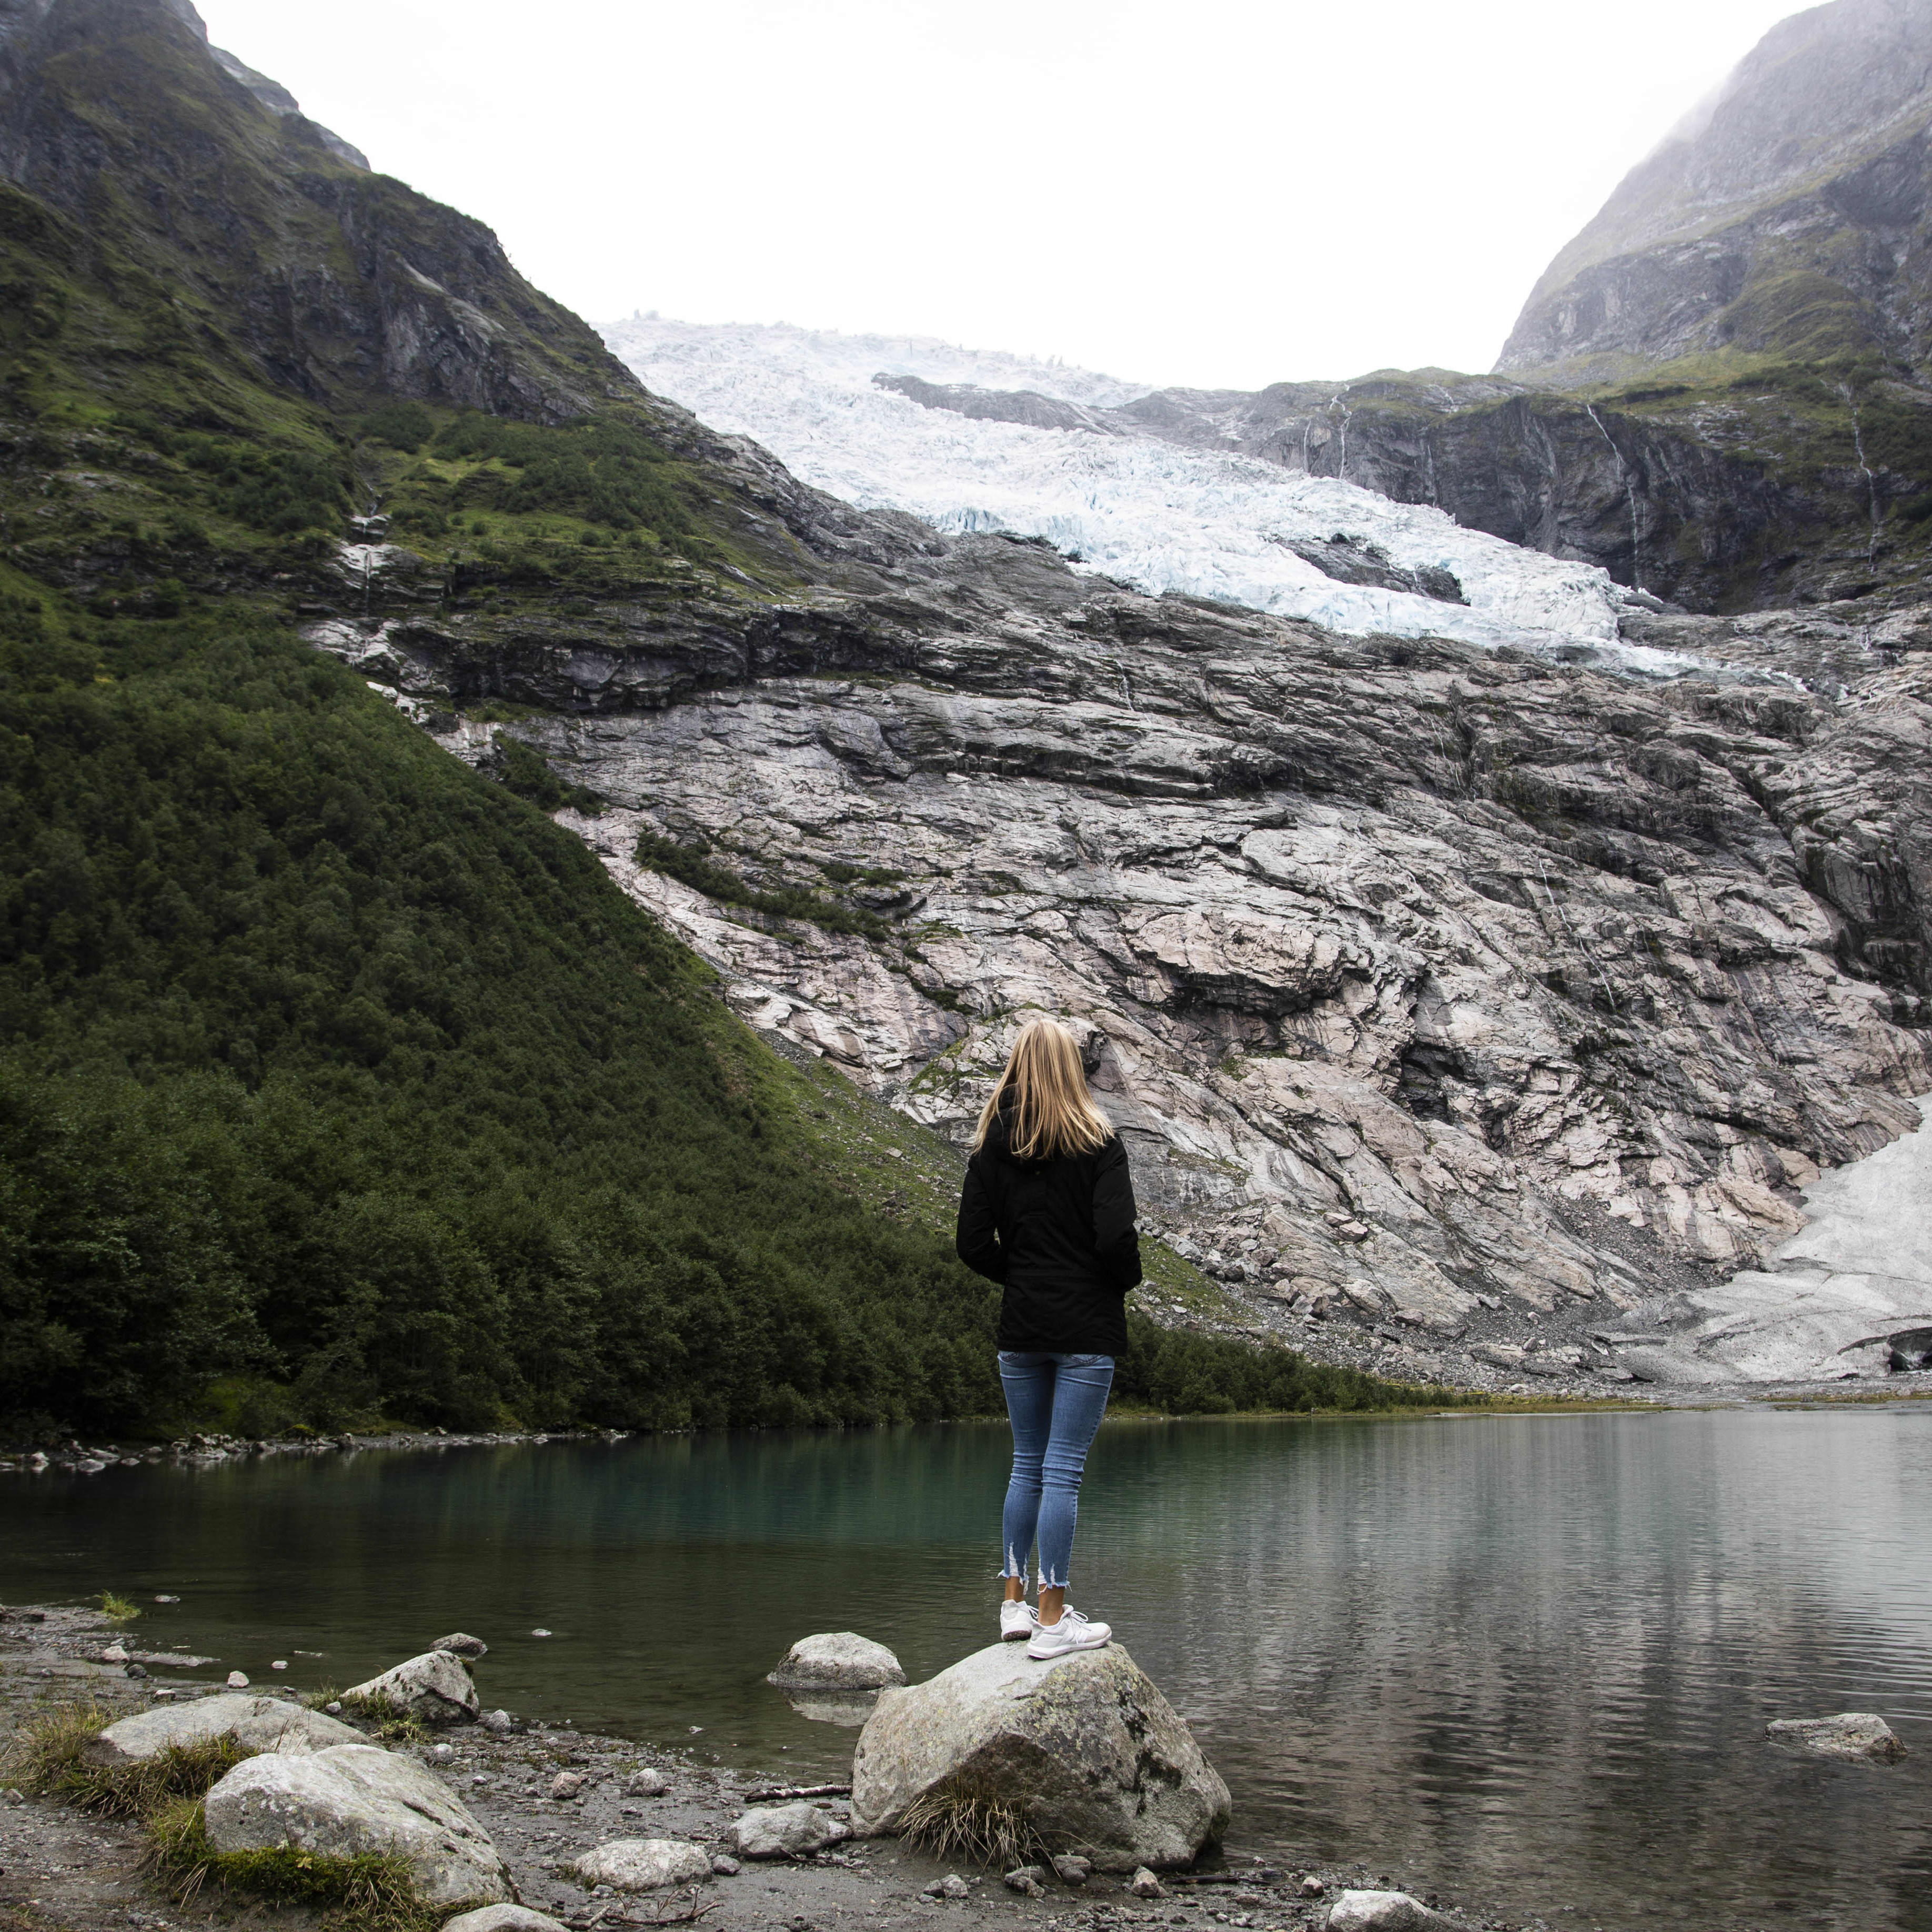 A girl with long blond hair and a black parkas standing on a small rock by the green water looking up at the small arm of Jostedalsbreen named Boyabreen.